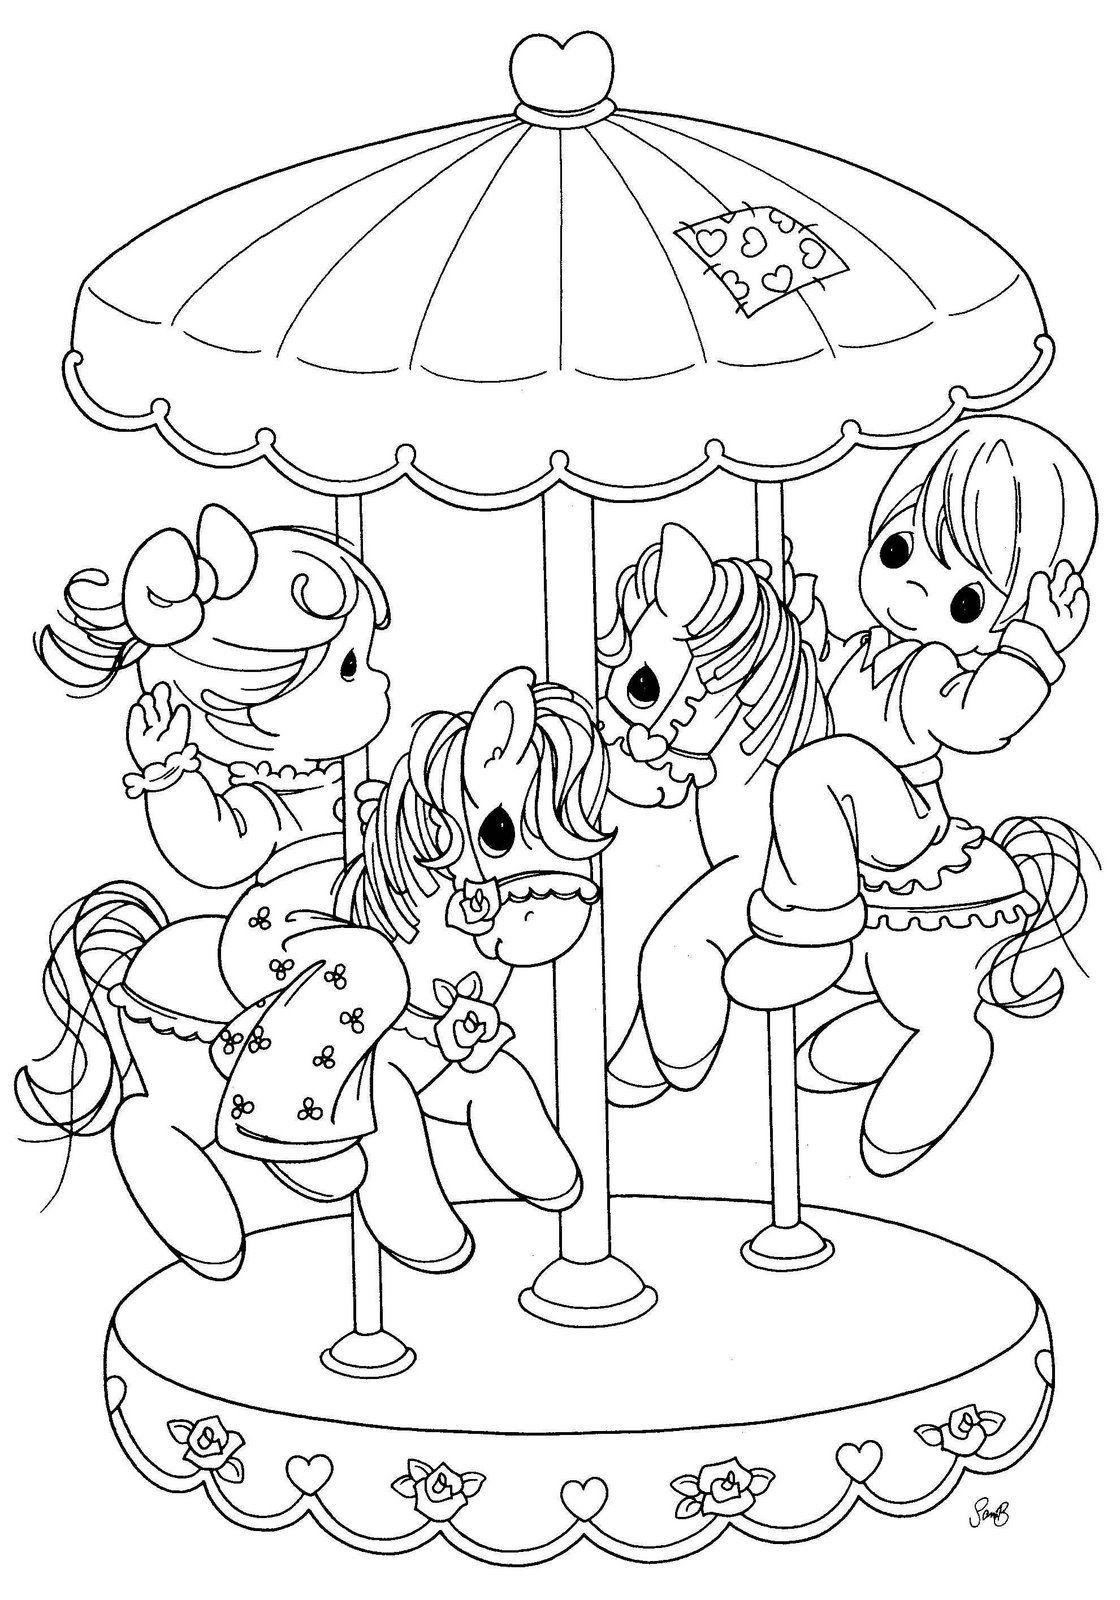 Carousel Horse Coloring Pages | GIOSTRA | coloring pages | Pinterest ...